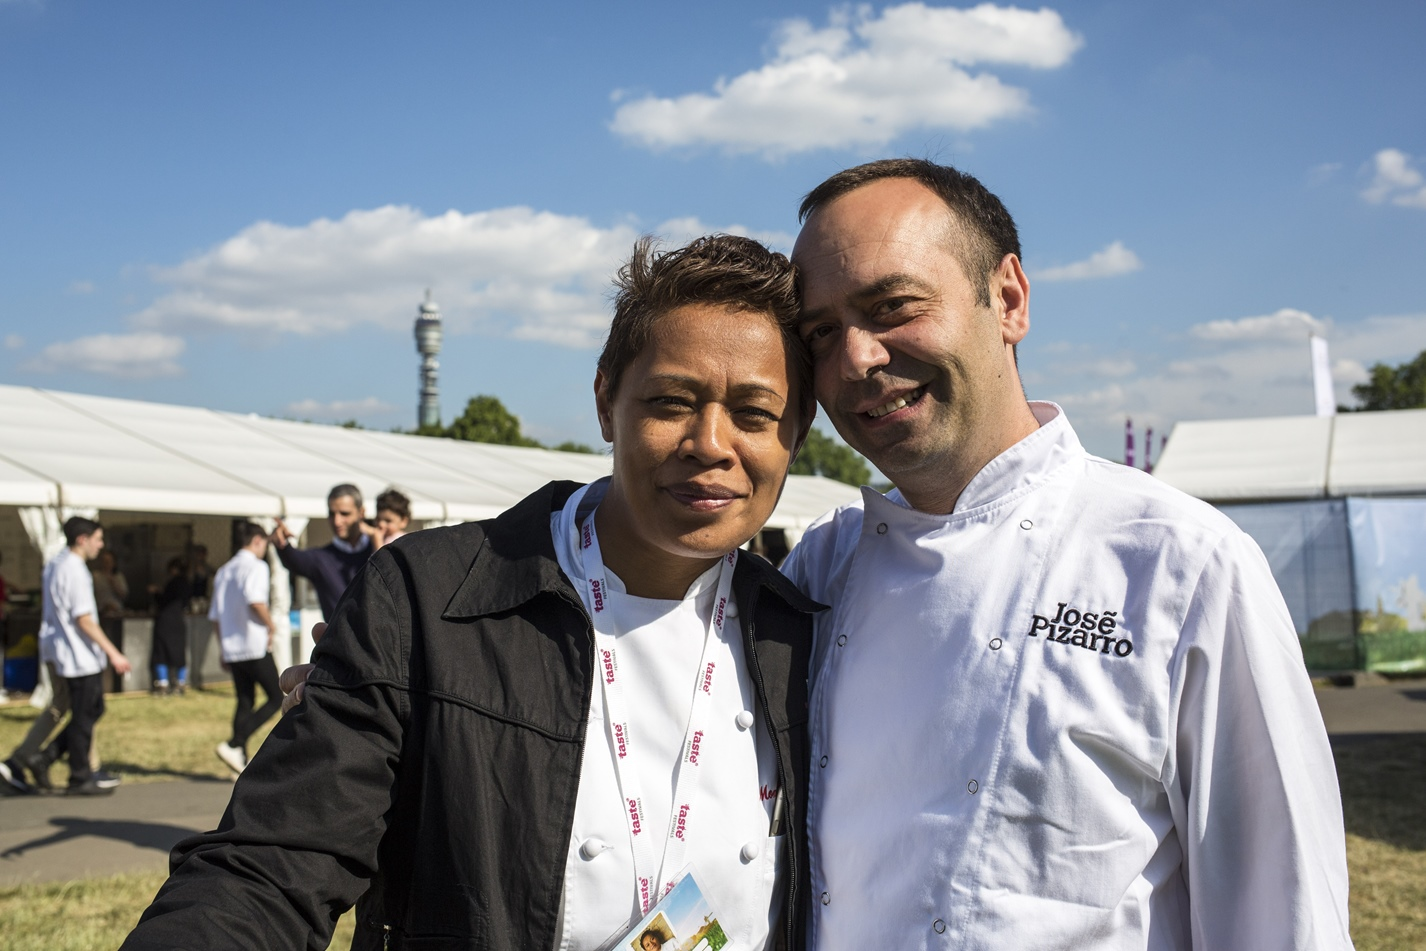 Monica Galetti and Jose Pizarro at Taste of London